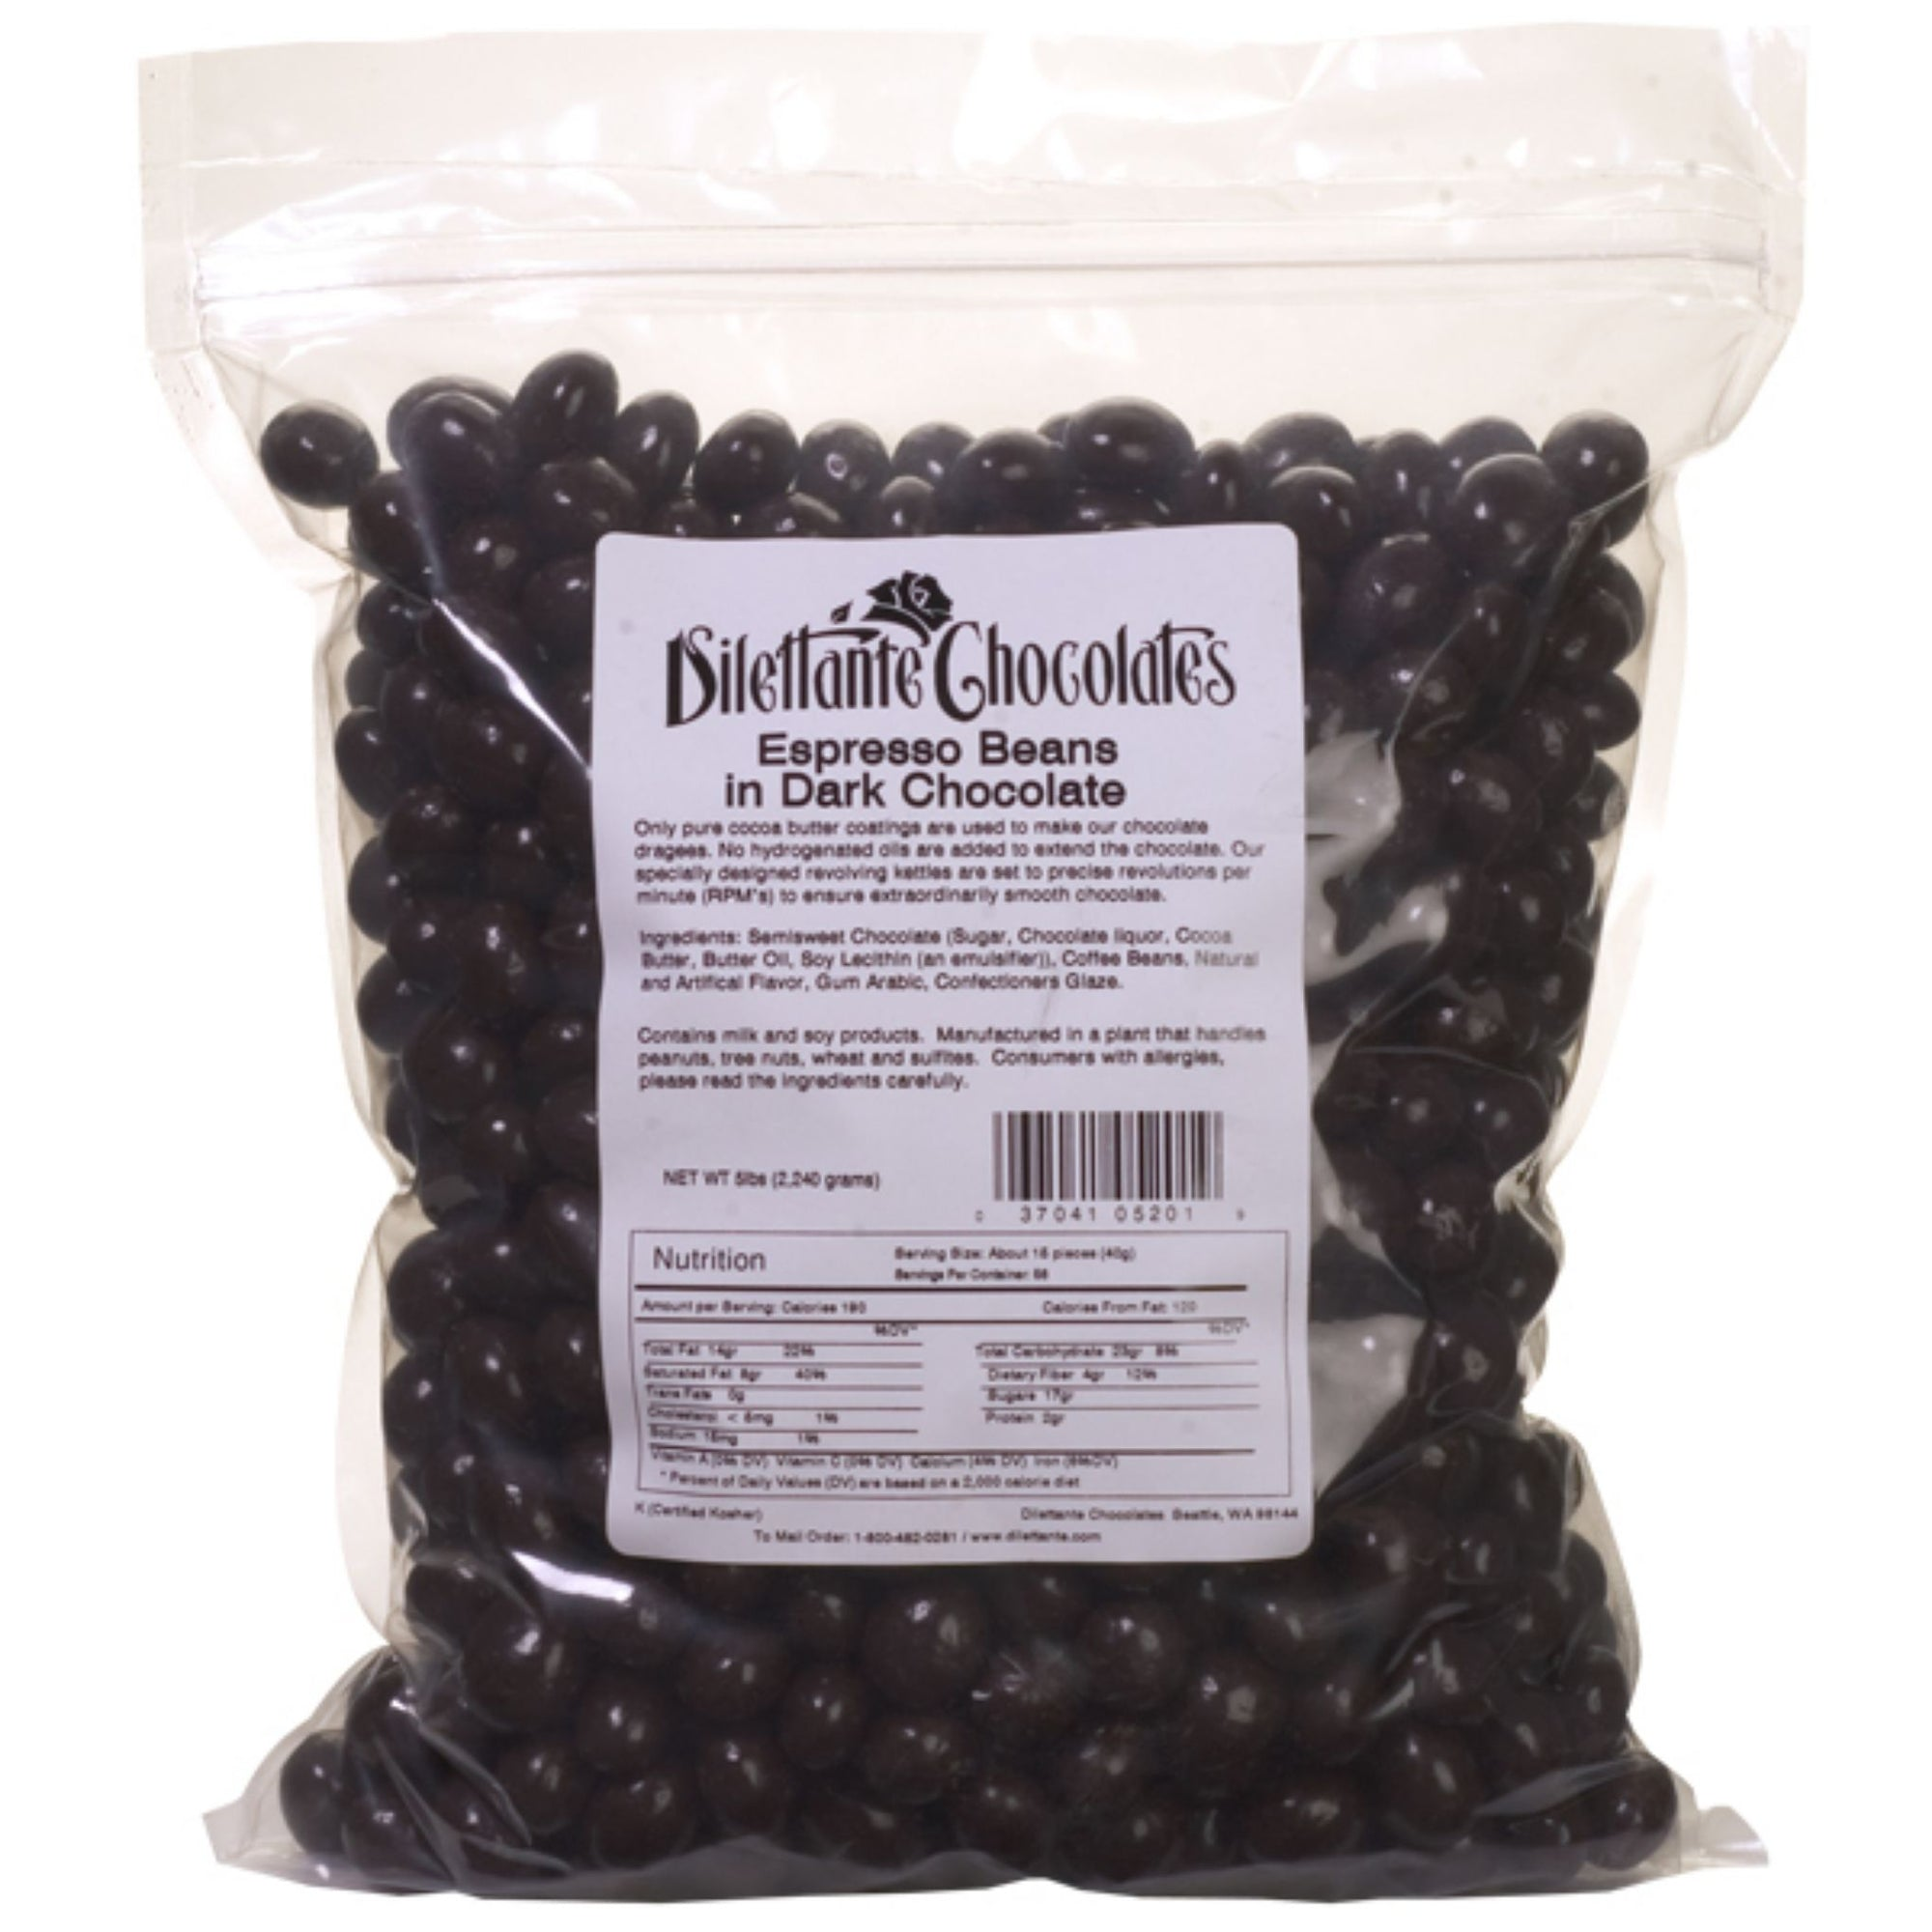 Dilettante Chocolates Espresso Beans in Dark Chocolate Placed Inside a 5-Pound Bulk Bag